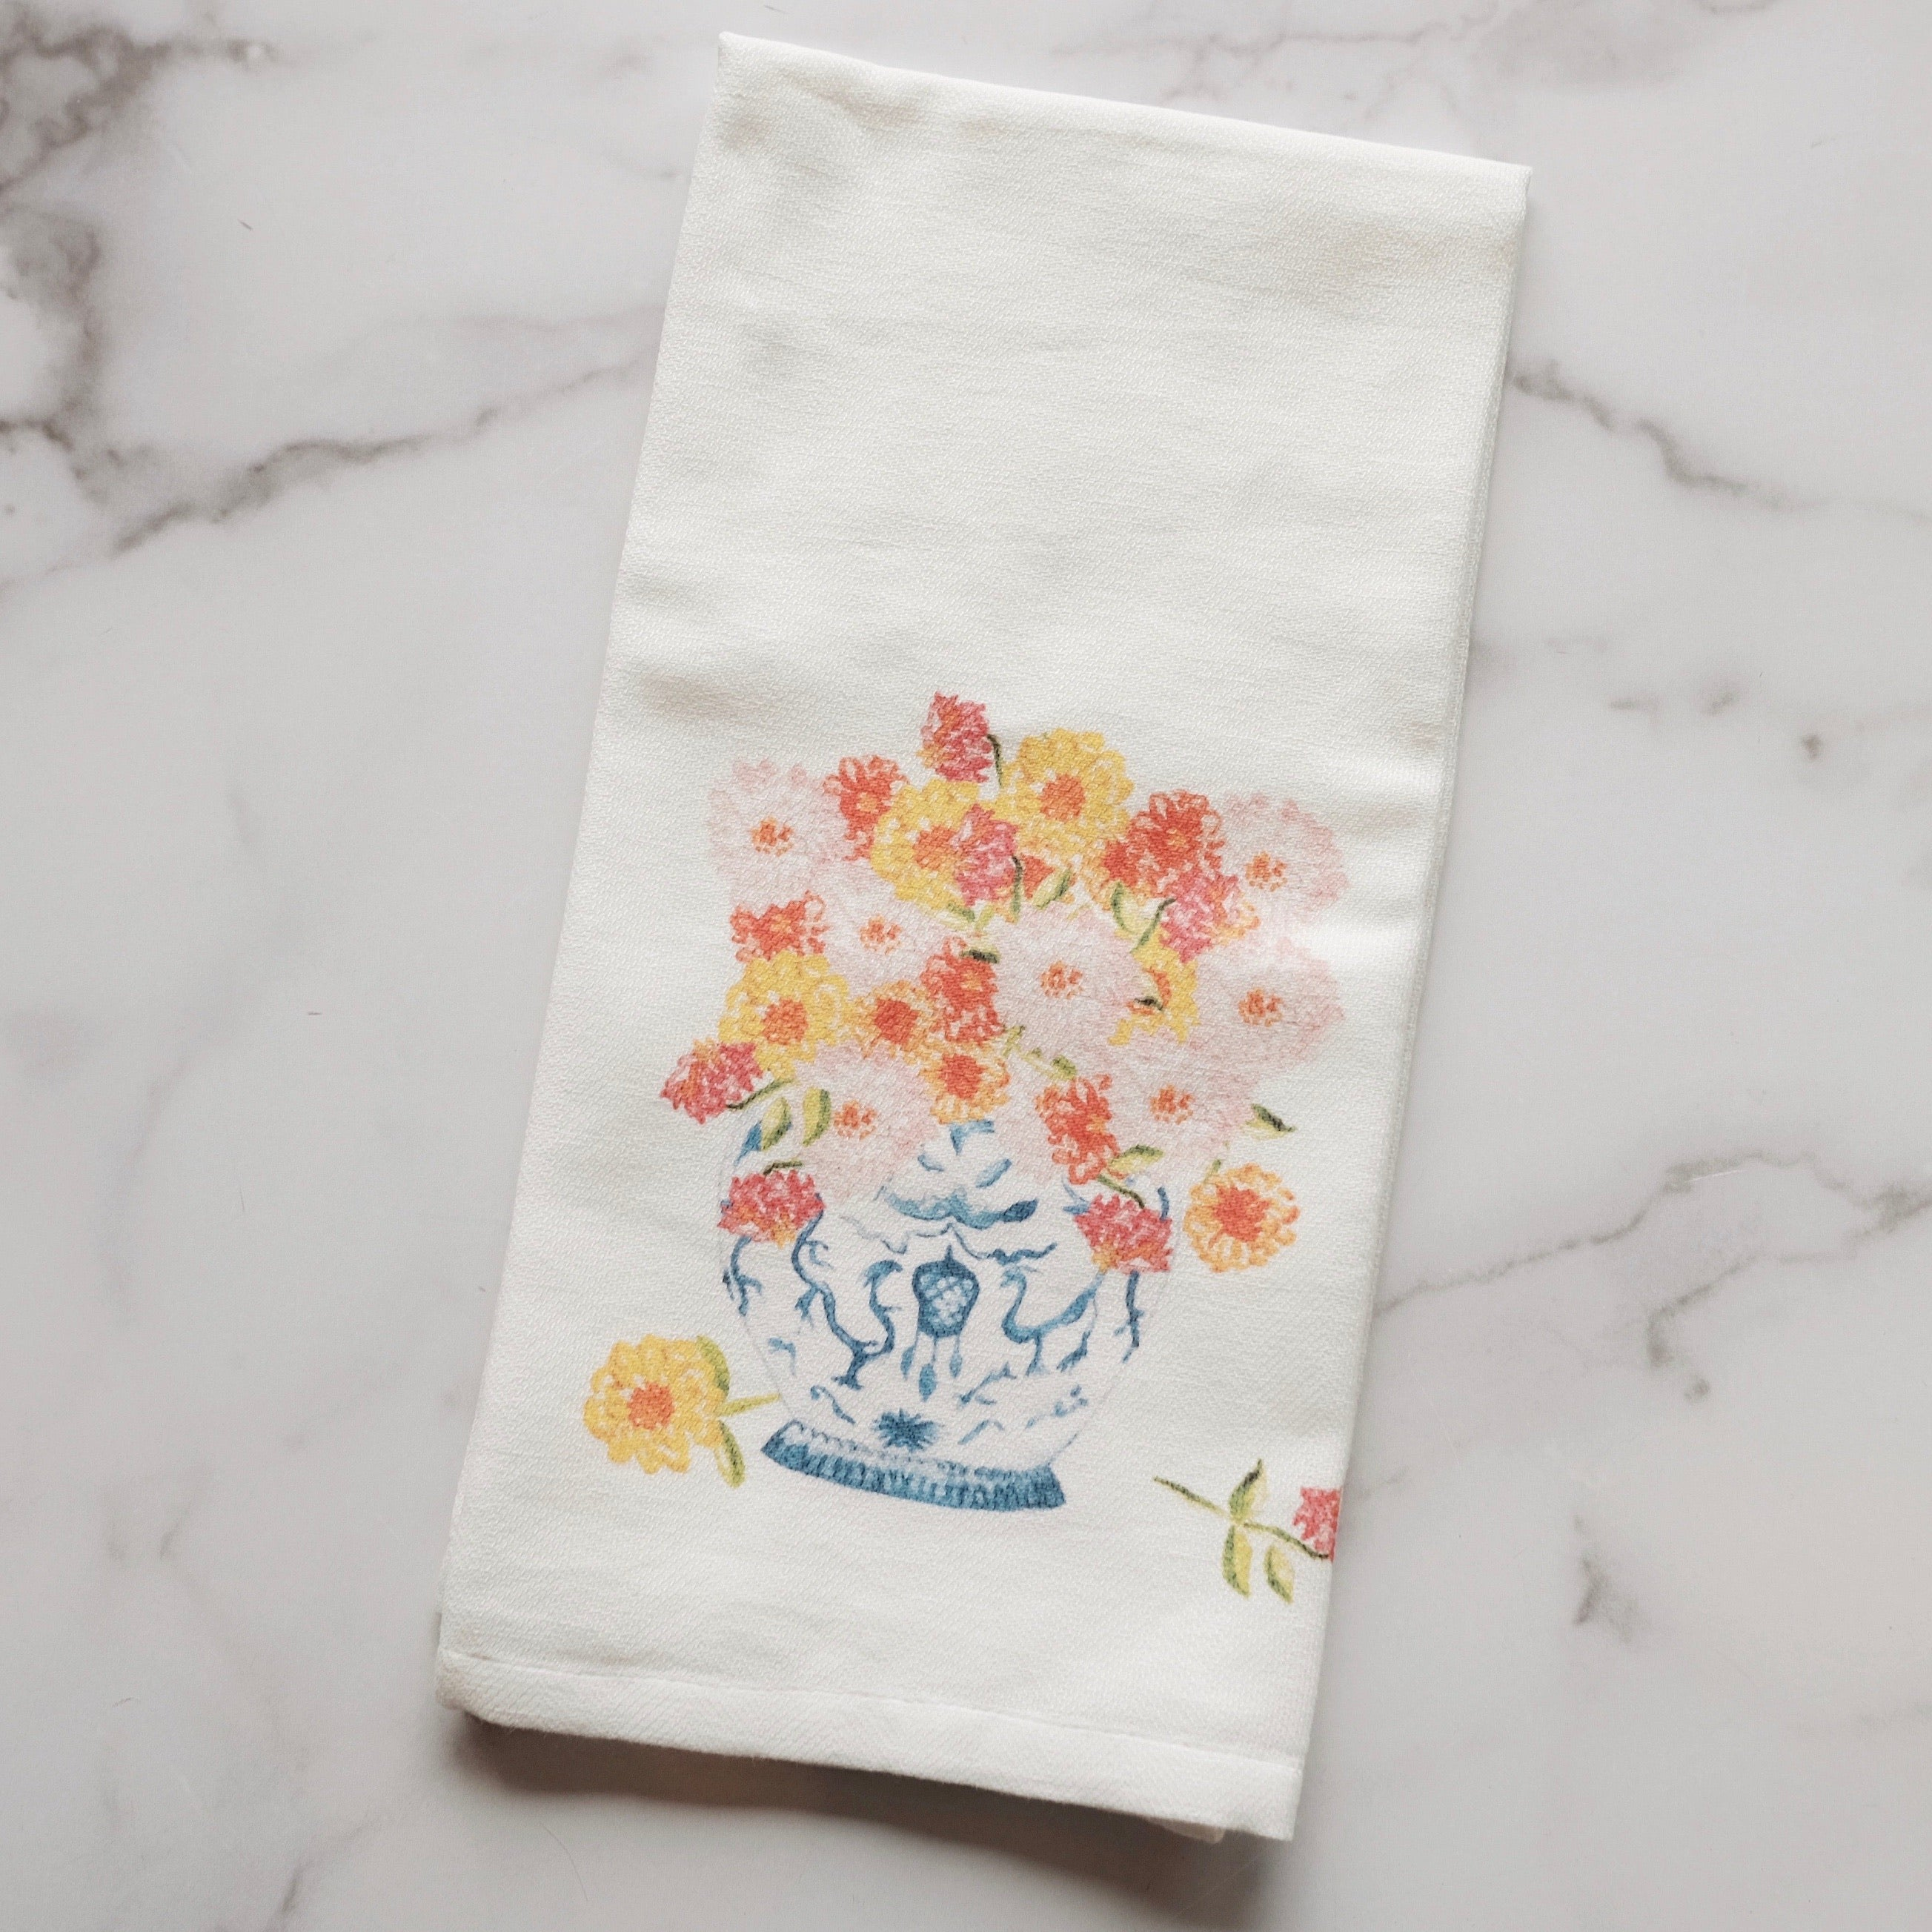 GINGER JAR W/ ZINNIAS TEA TOWEL